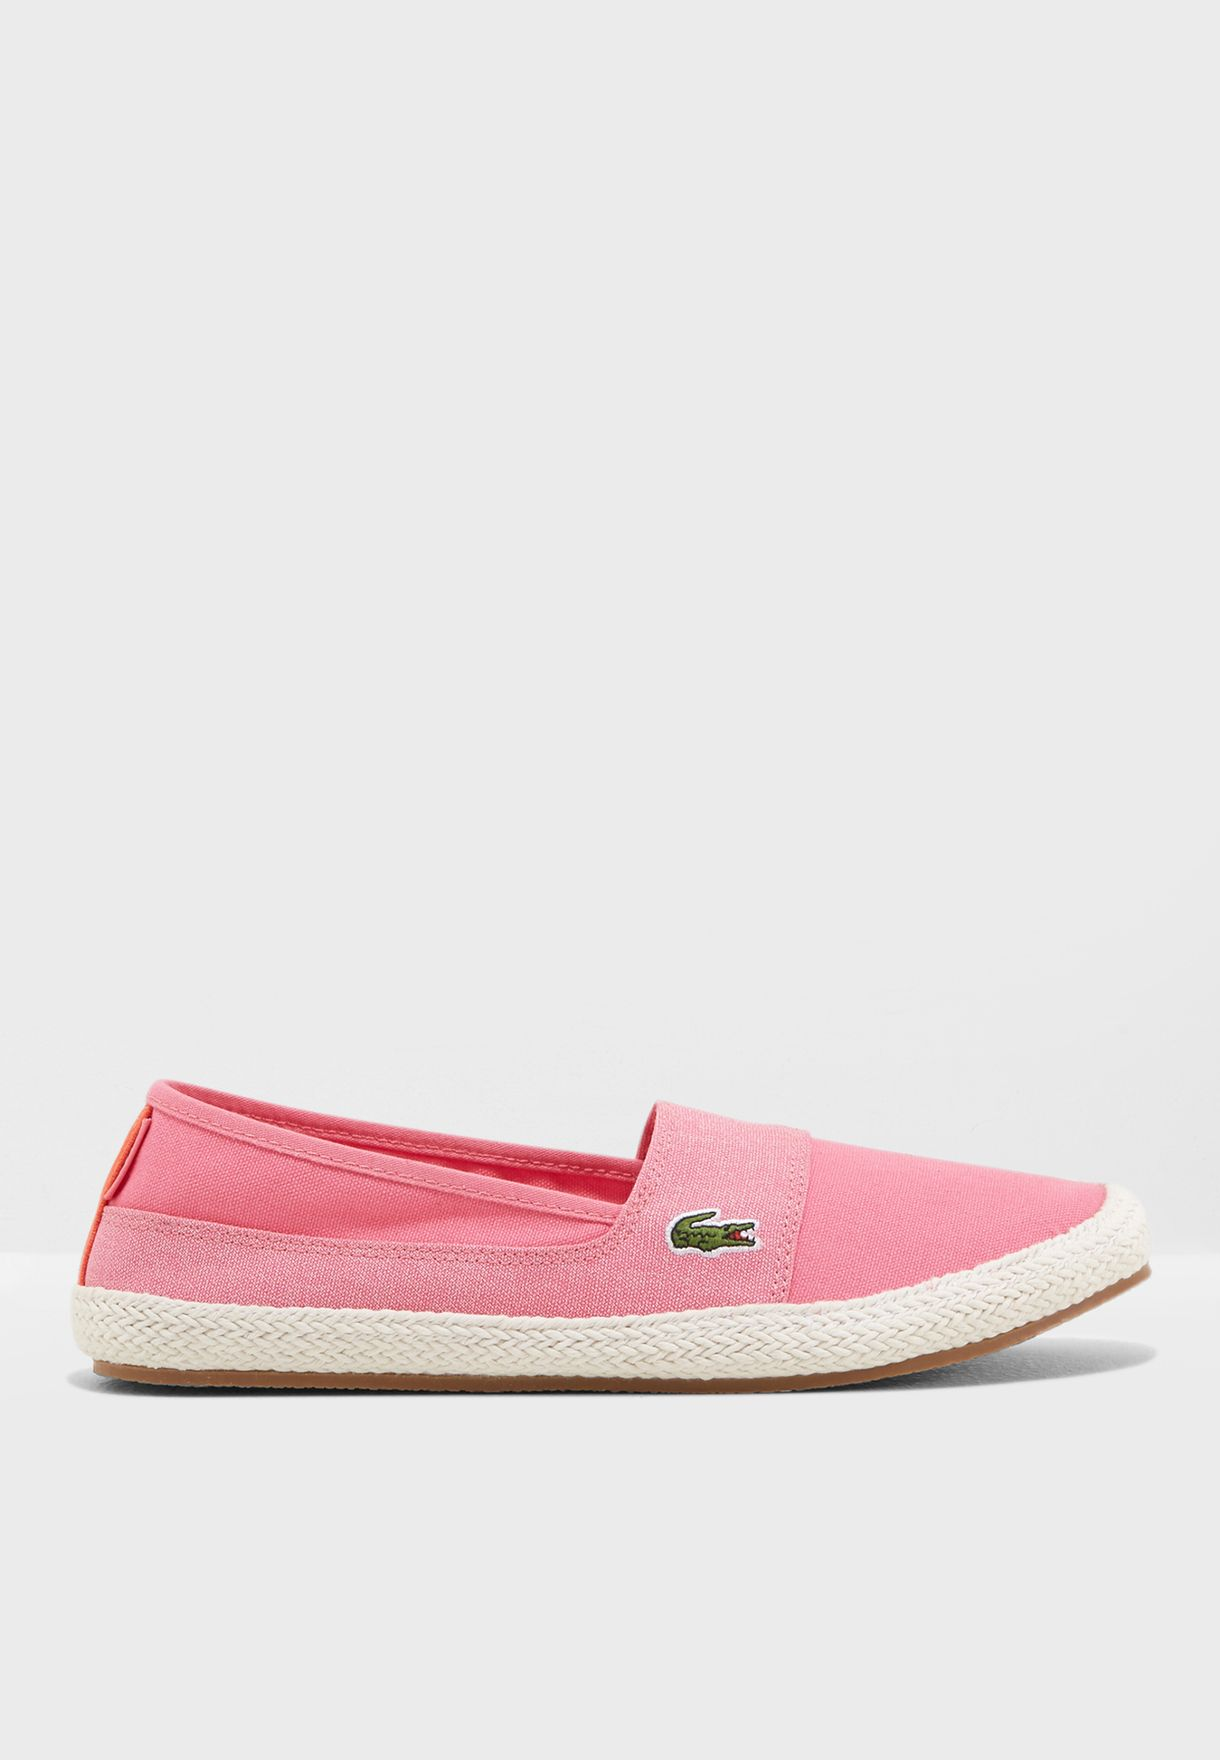 57e76b986d424 Shop Lacoste pink Marice 218 1 35CAW0042-13C for Women in Oman -  LA014SH86ZWV